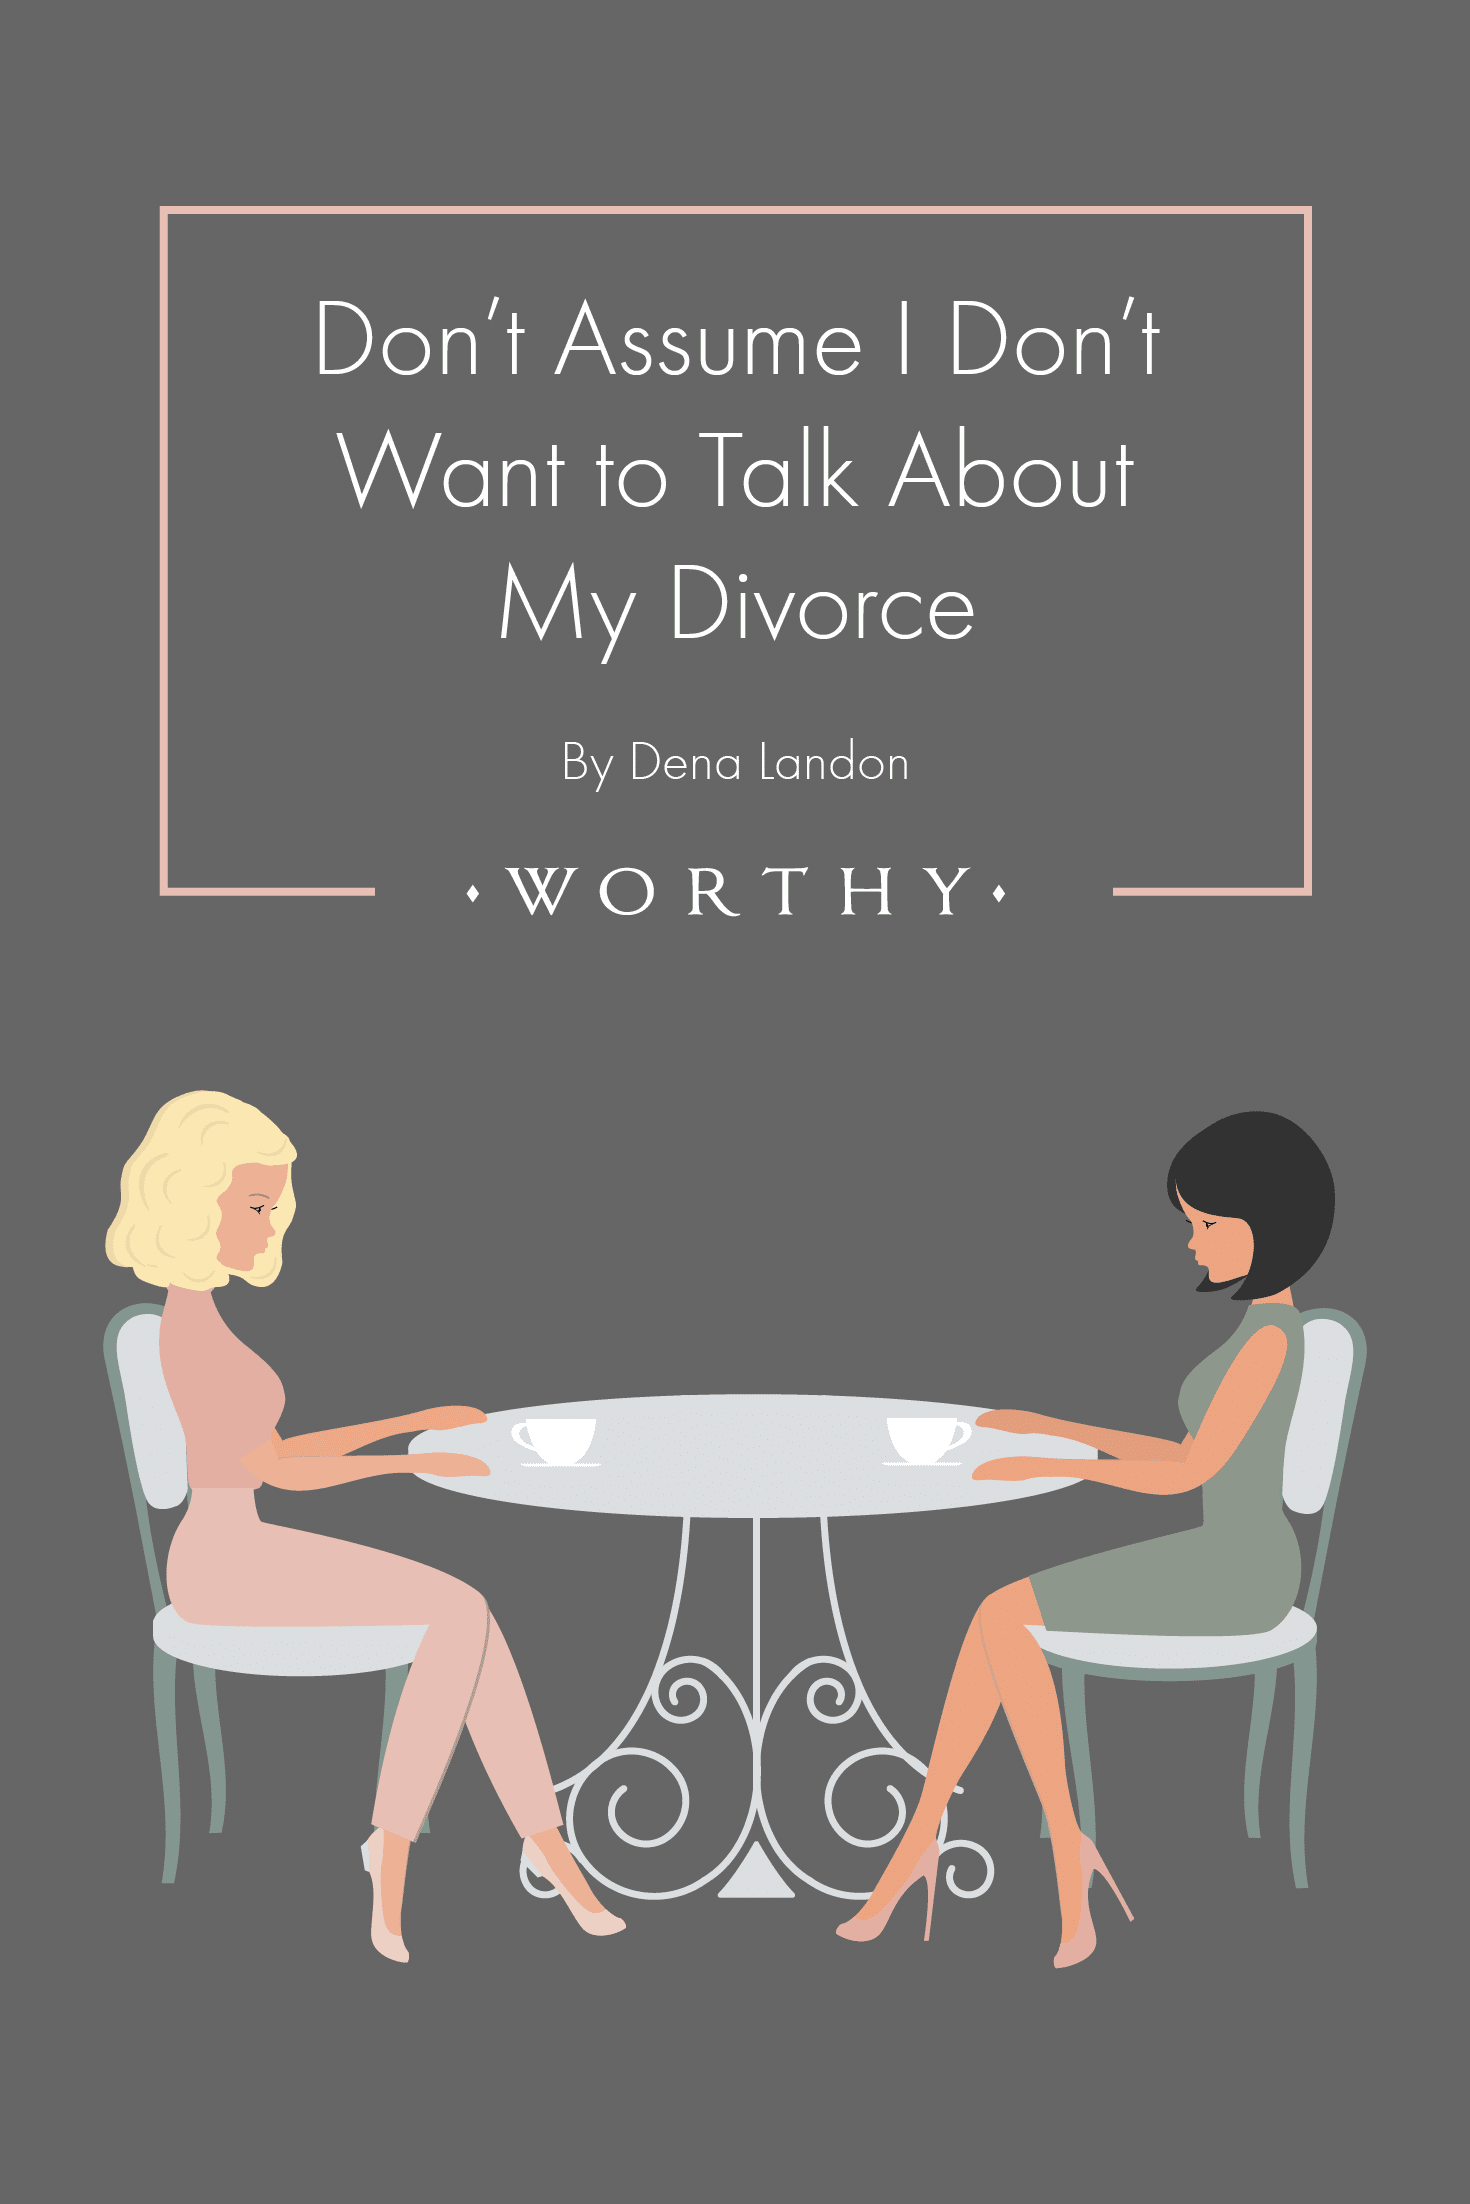 After most major life events, including unhappy ones, distant family members want to talk about it. Except for one. Divorce.